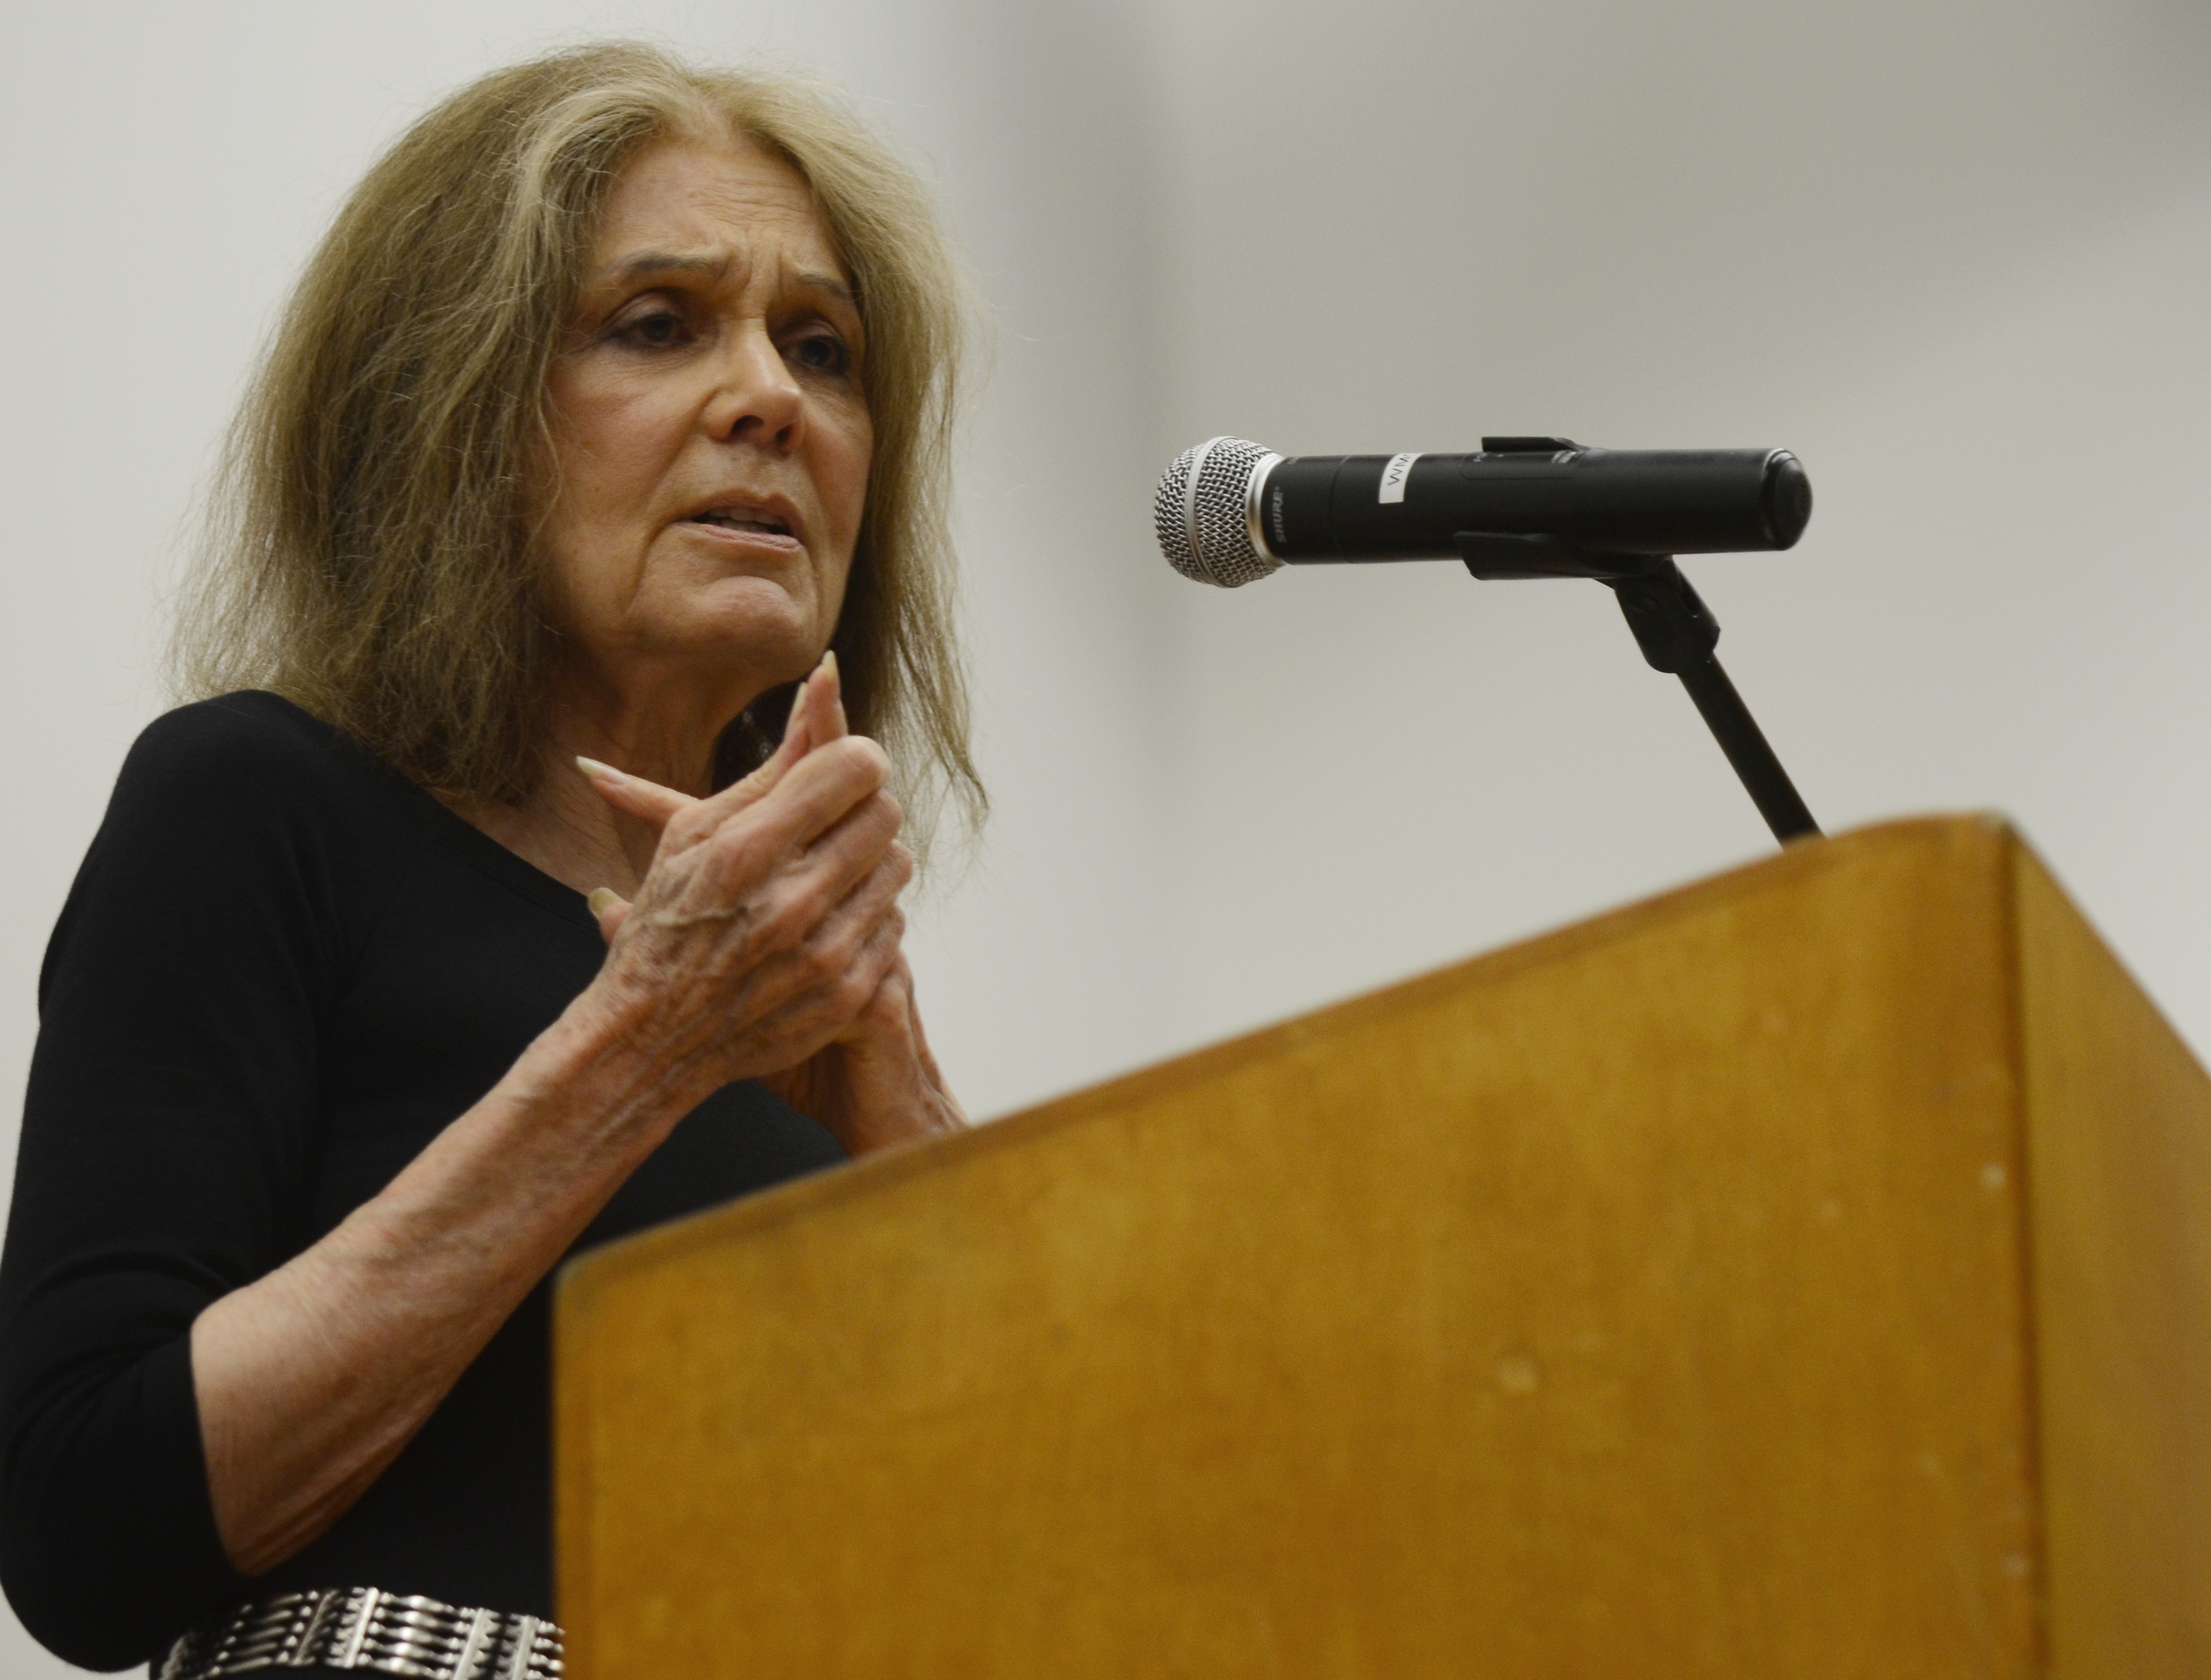 Feminist author and activist Gloria Steinem spoke at UCLA's Broad Art Center Sunday night to a full auditorium. In her speech, Steinem emphasized the importance of the upcoming November election for women's rights and causes, such as access to family planning and bodily autonomy.